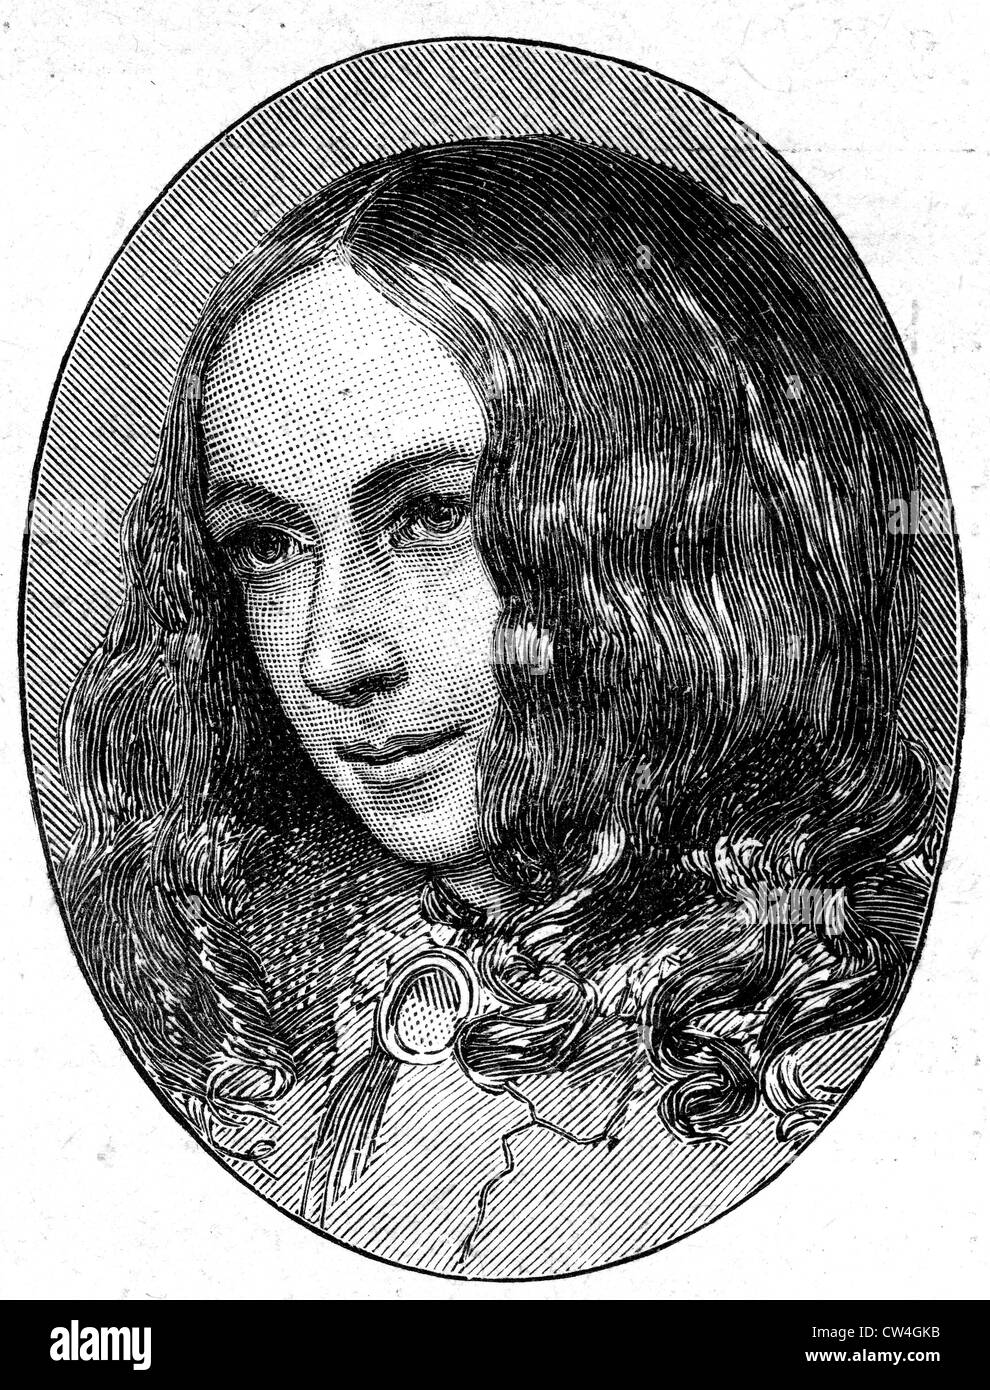 ELIZABETH BARRETT BROWNING  (1806-1861) English poet and wife of Robert Browning - Stock Image